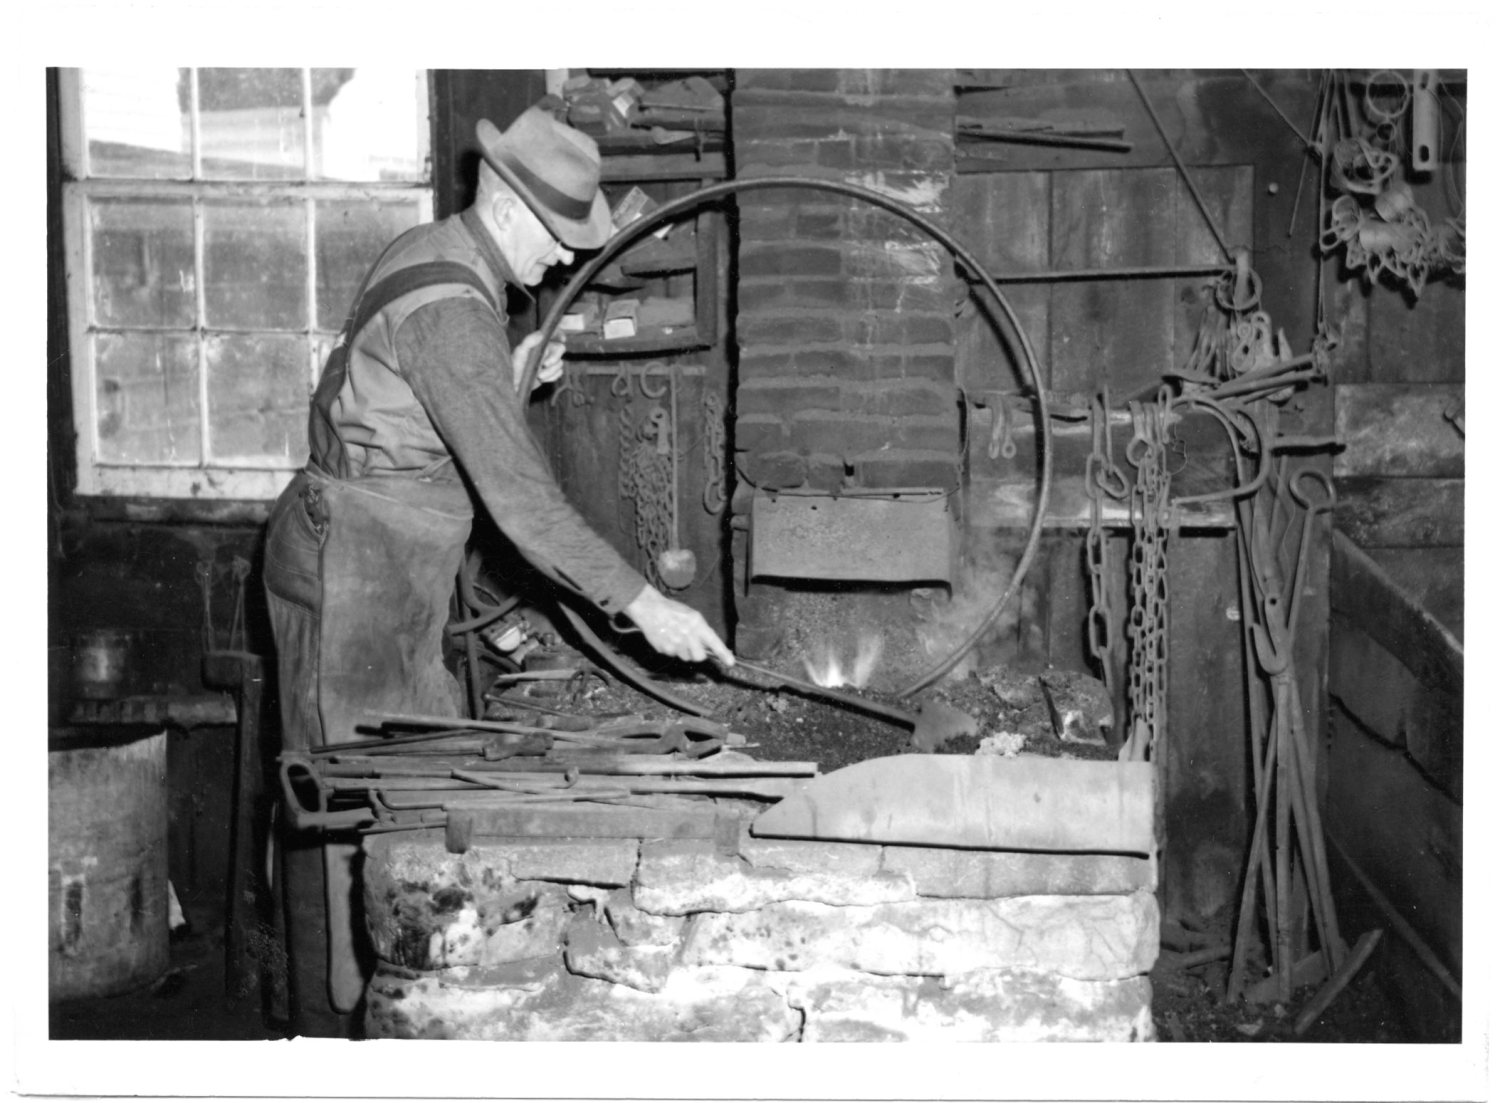 A man does work in his blacksmith shop